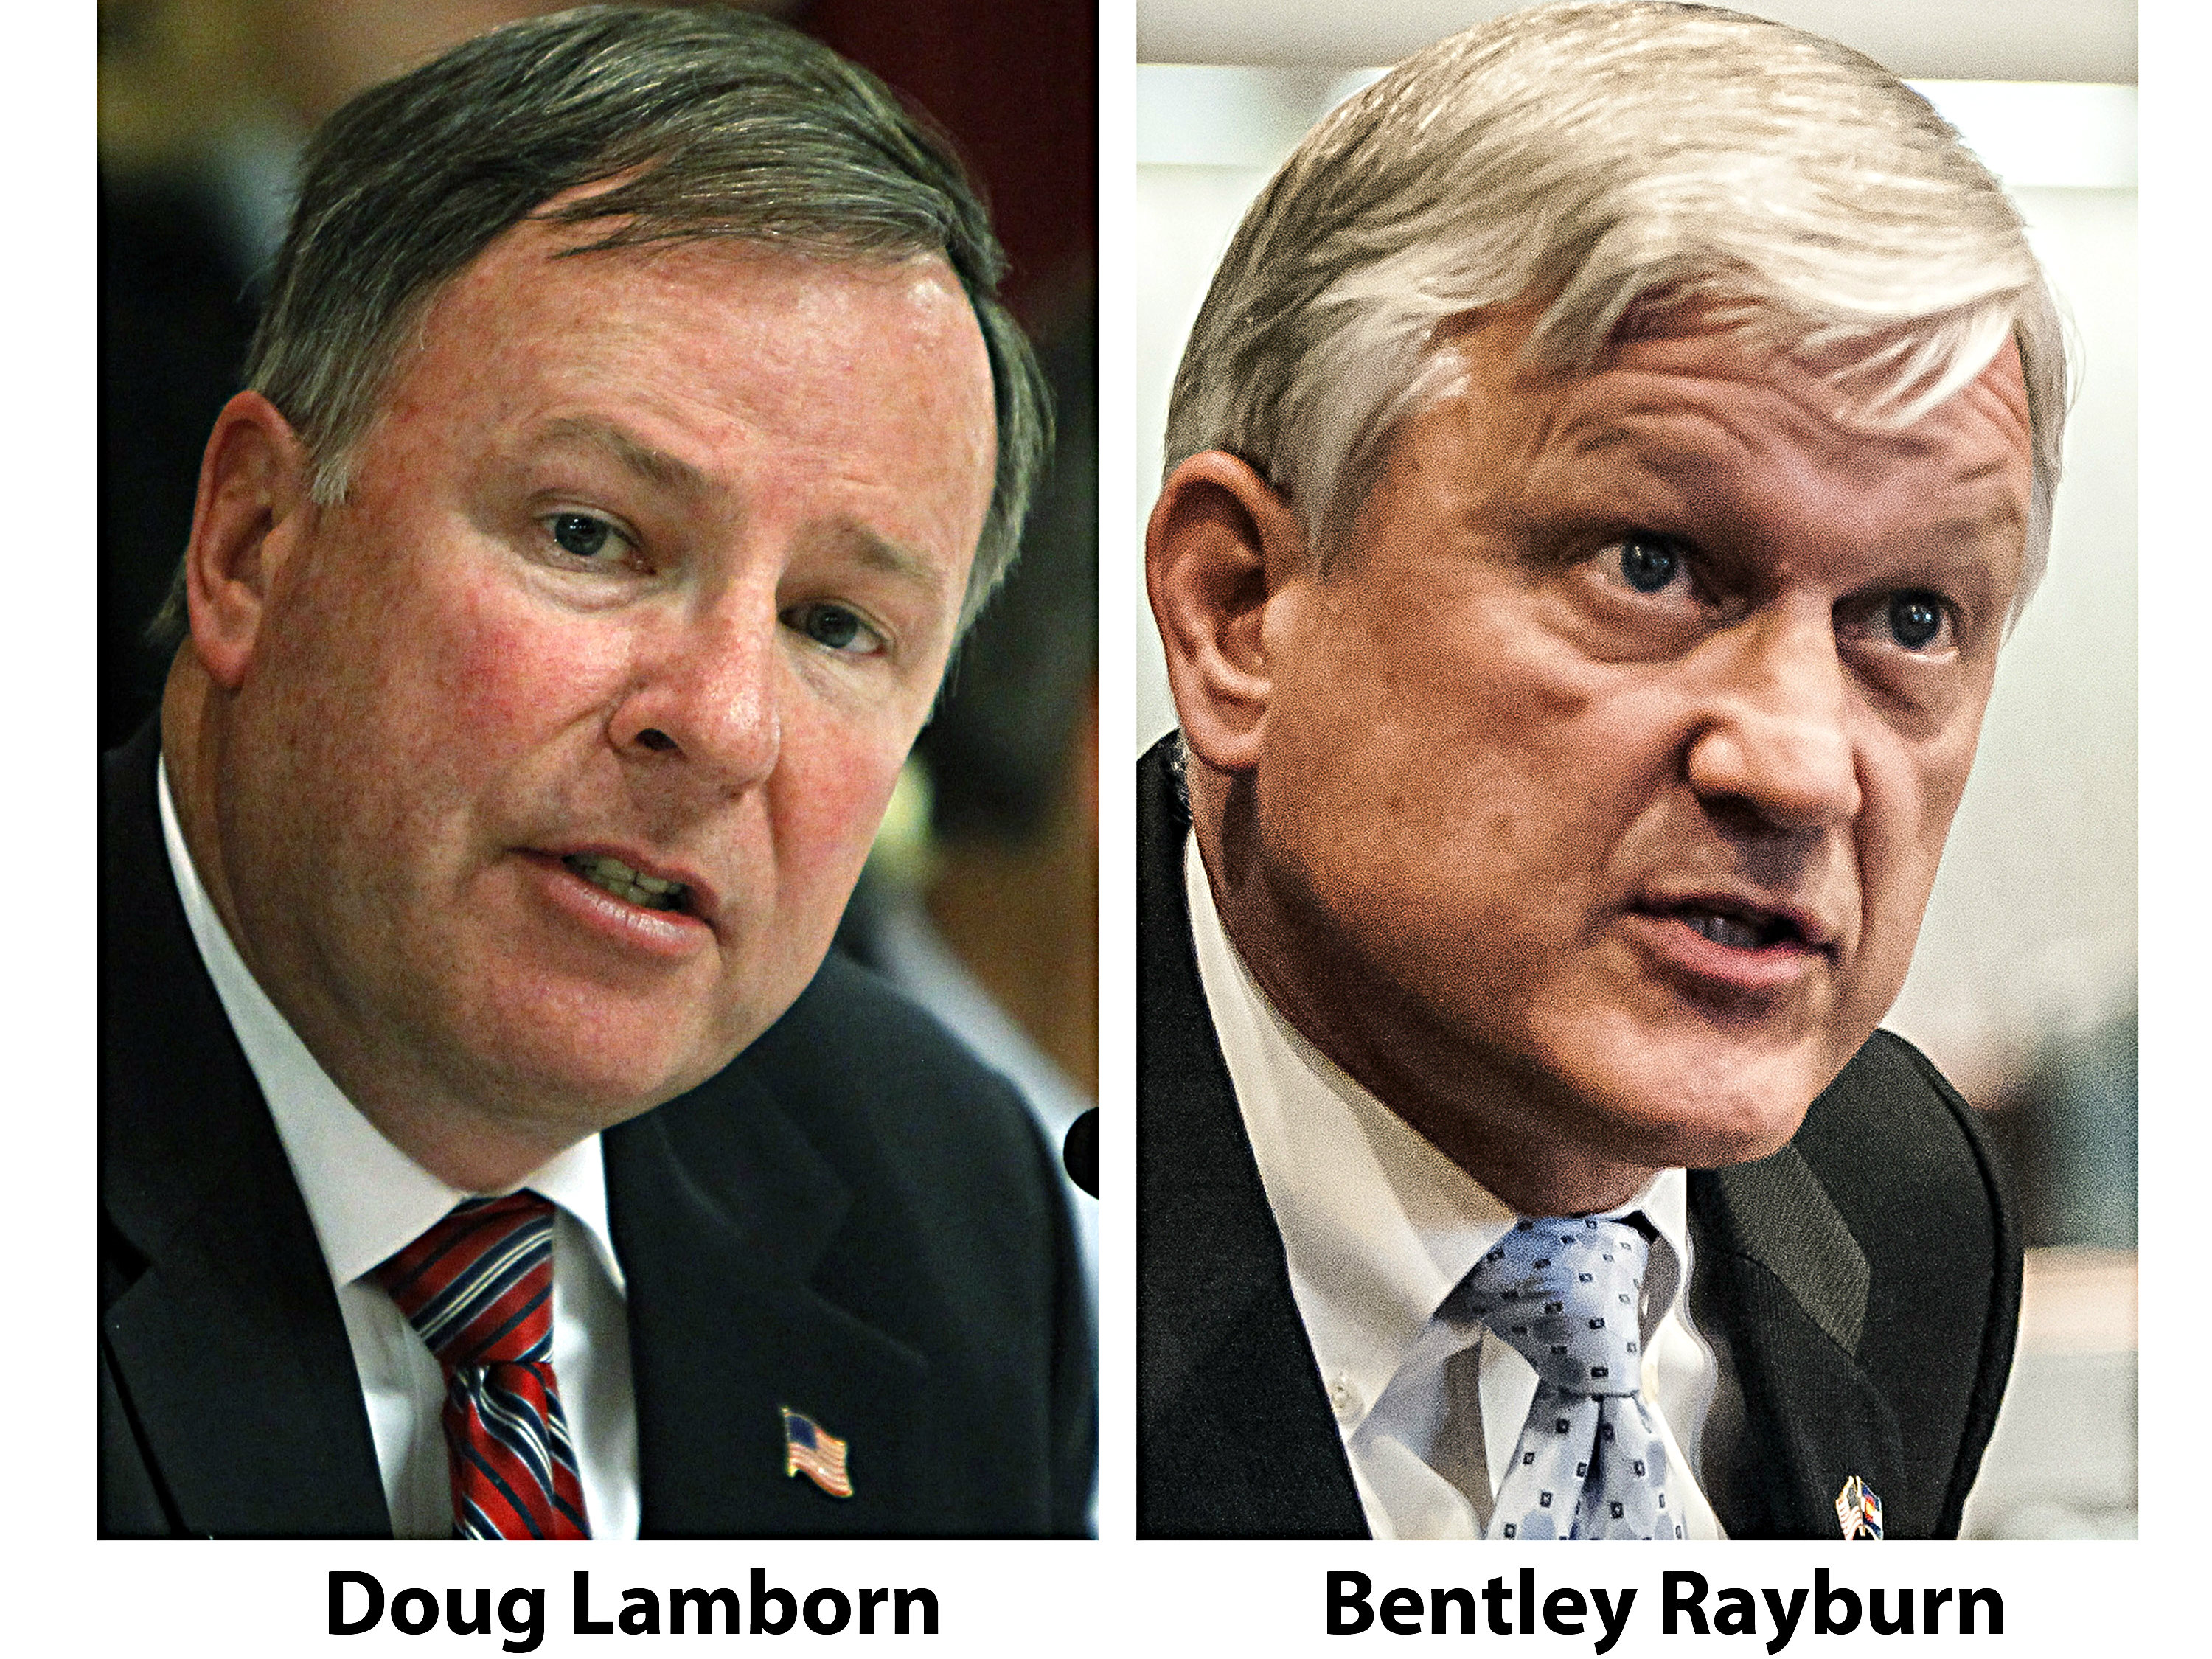 Photo: AP composite of Lamborn and Rayburn